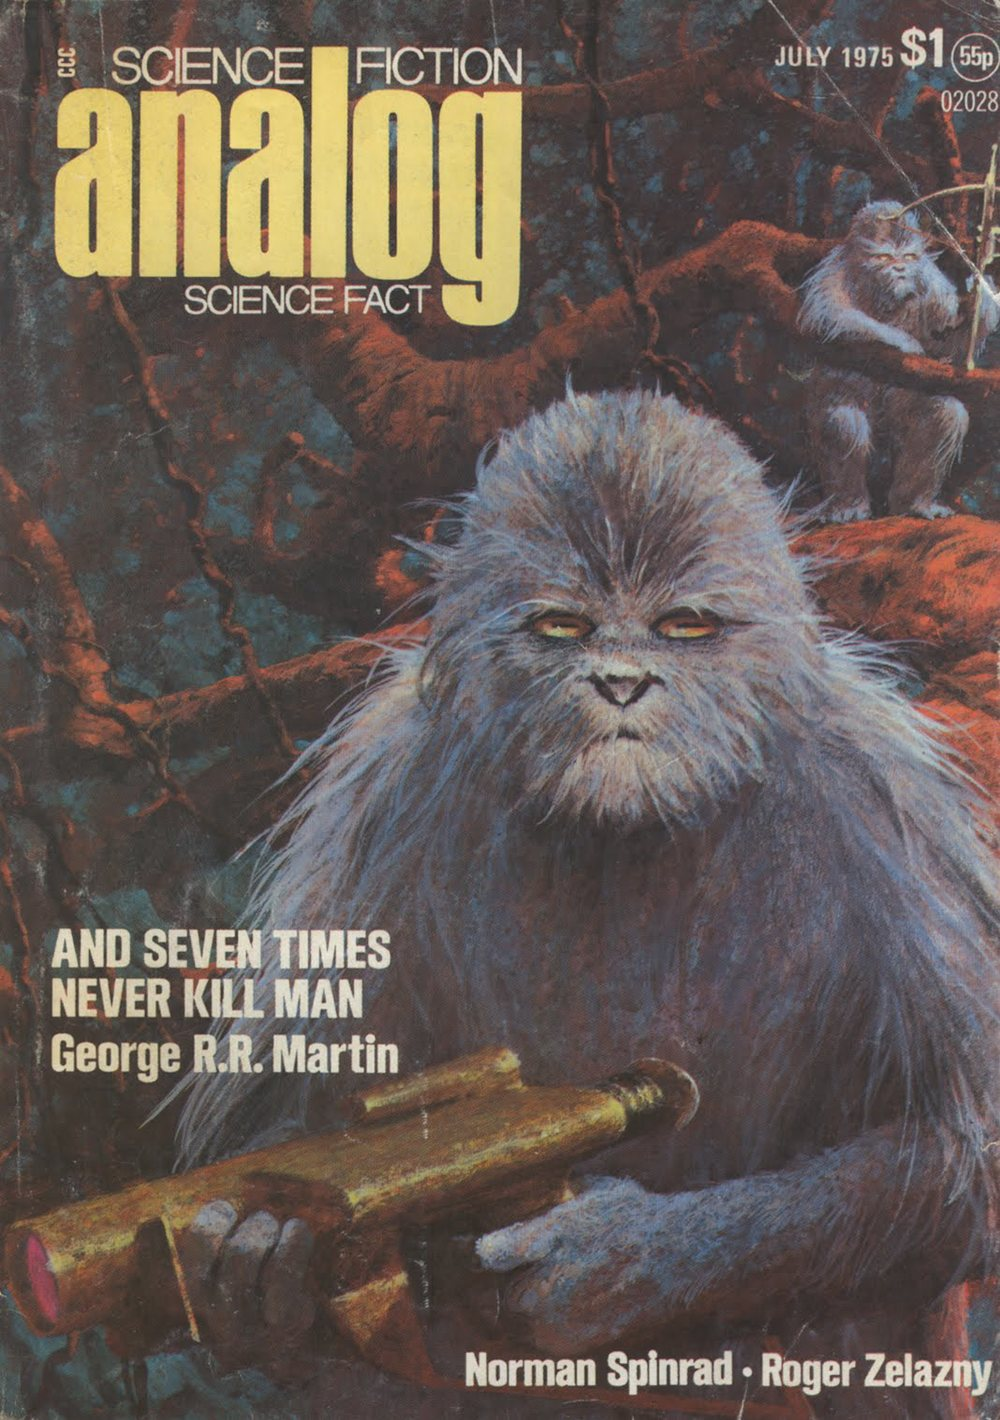 Analog, July 1975 cover by John Schoenherr